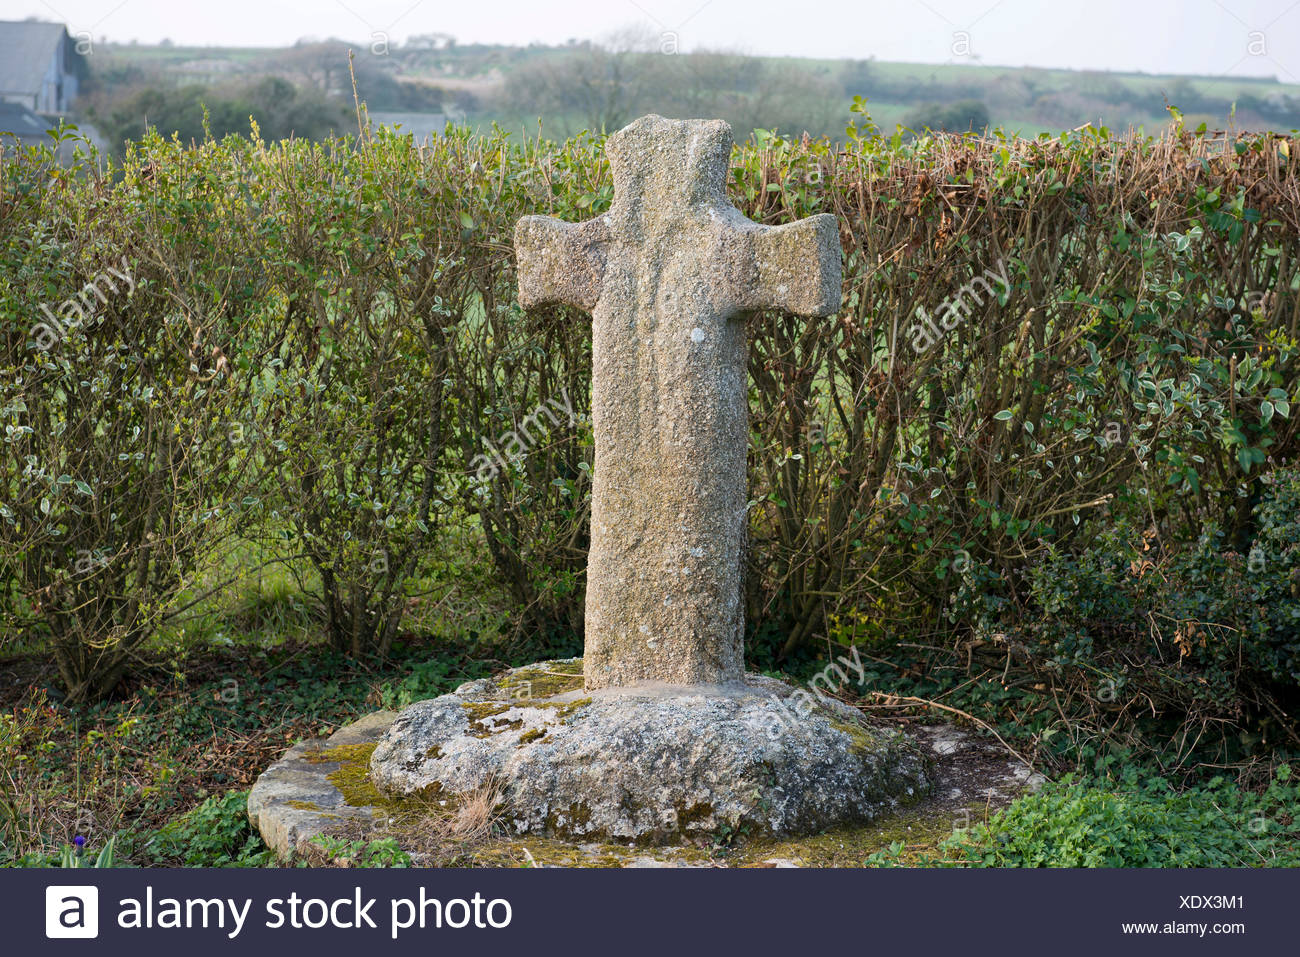 Historic stone cross in front of a hedge, Plouarzel, Finistère department of Brittany, France, Europe - Stock Image